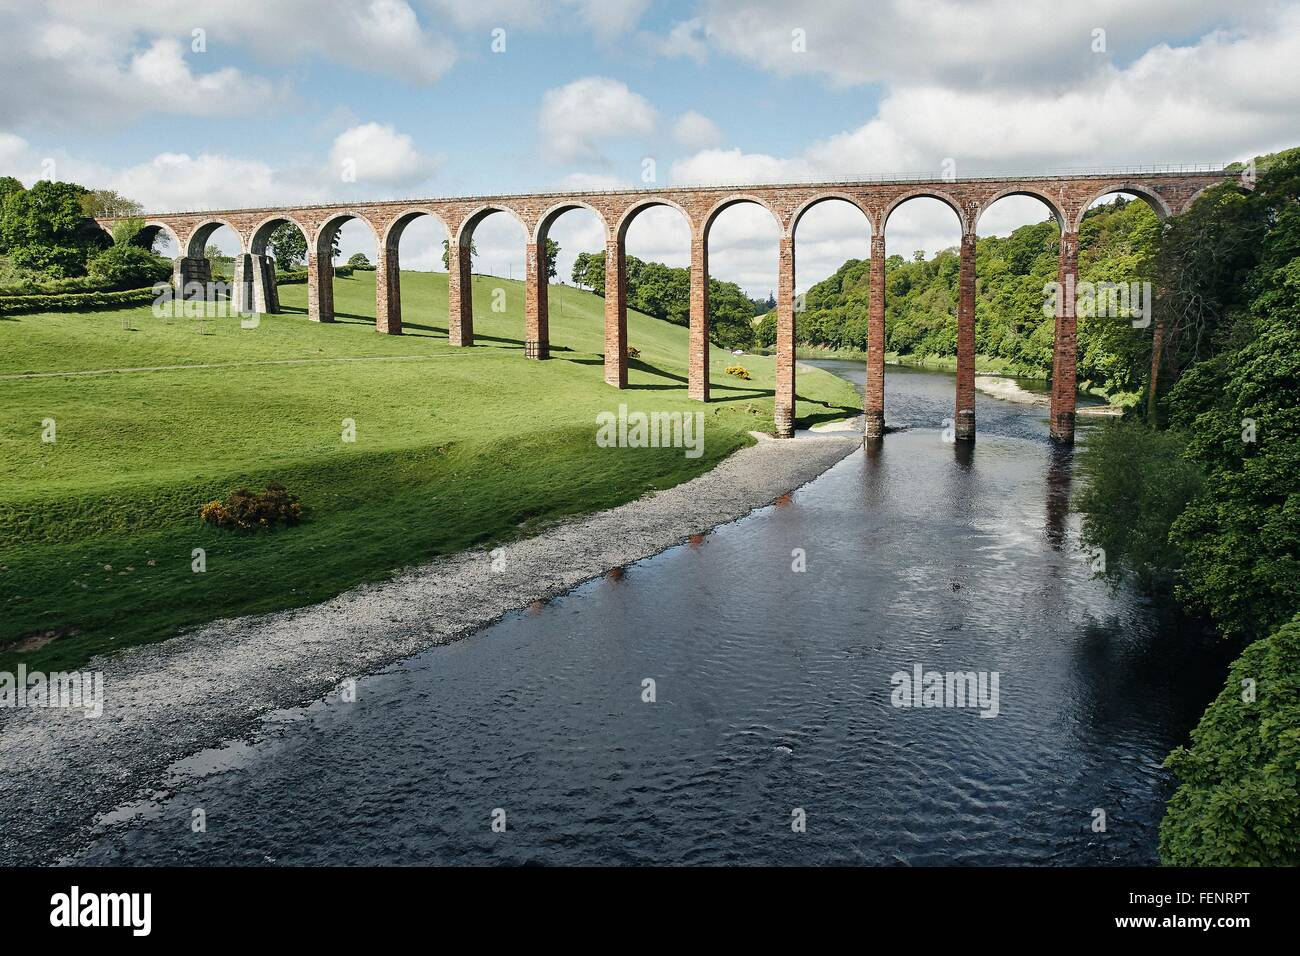 Elevated view of river and Leaderfoot railway viaduct, Melrose, Scotland - Stock Image